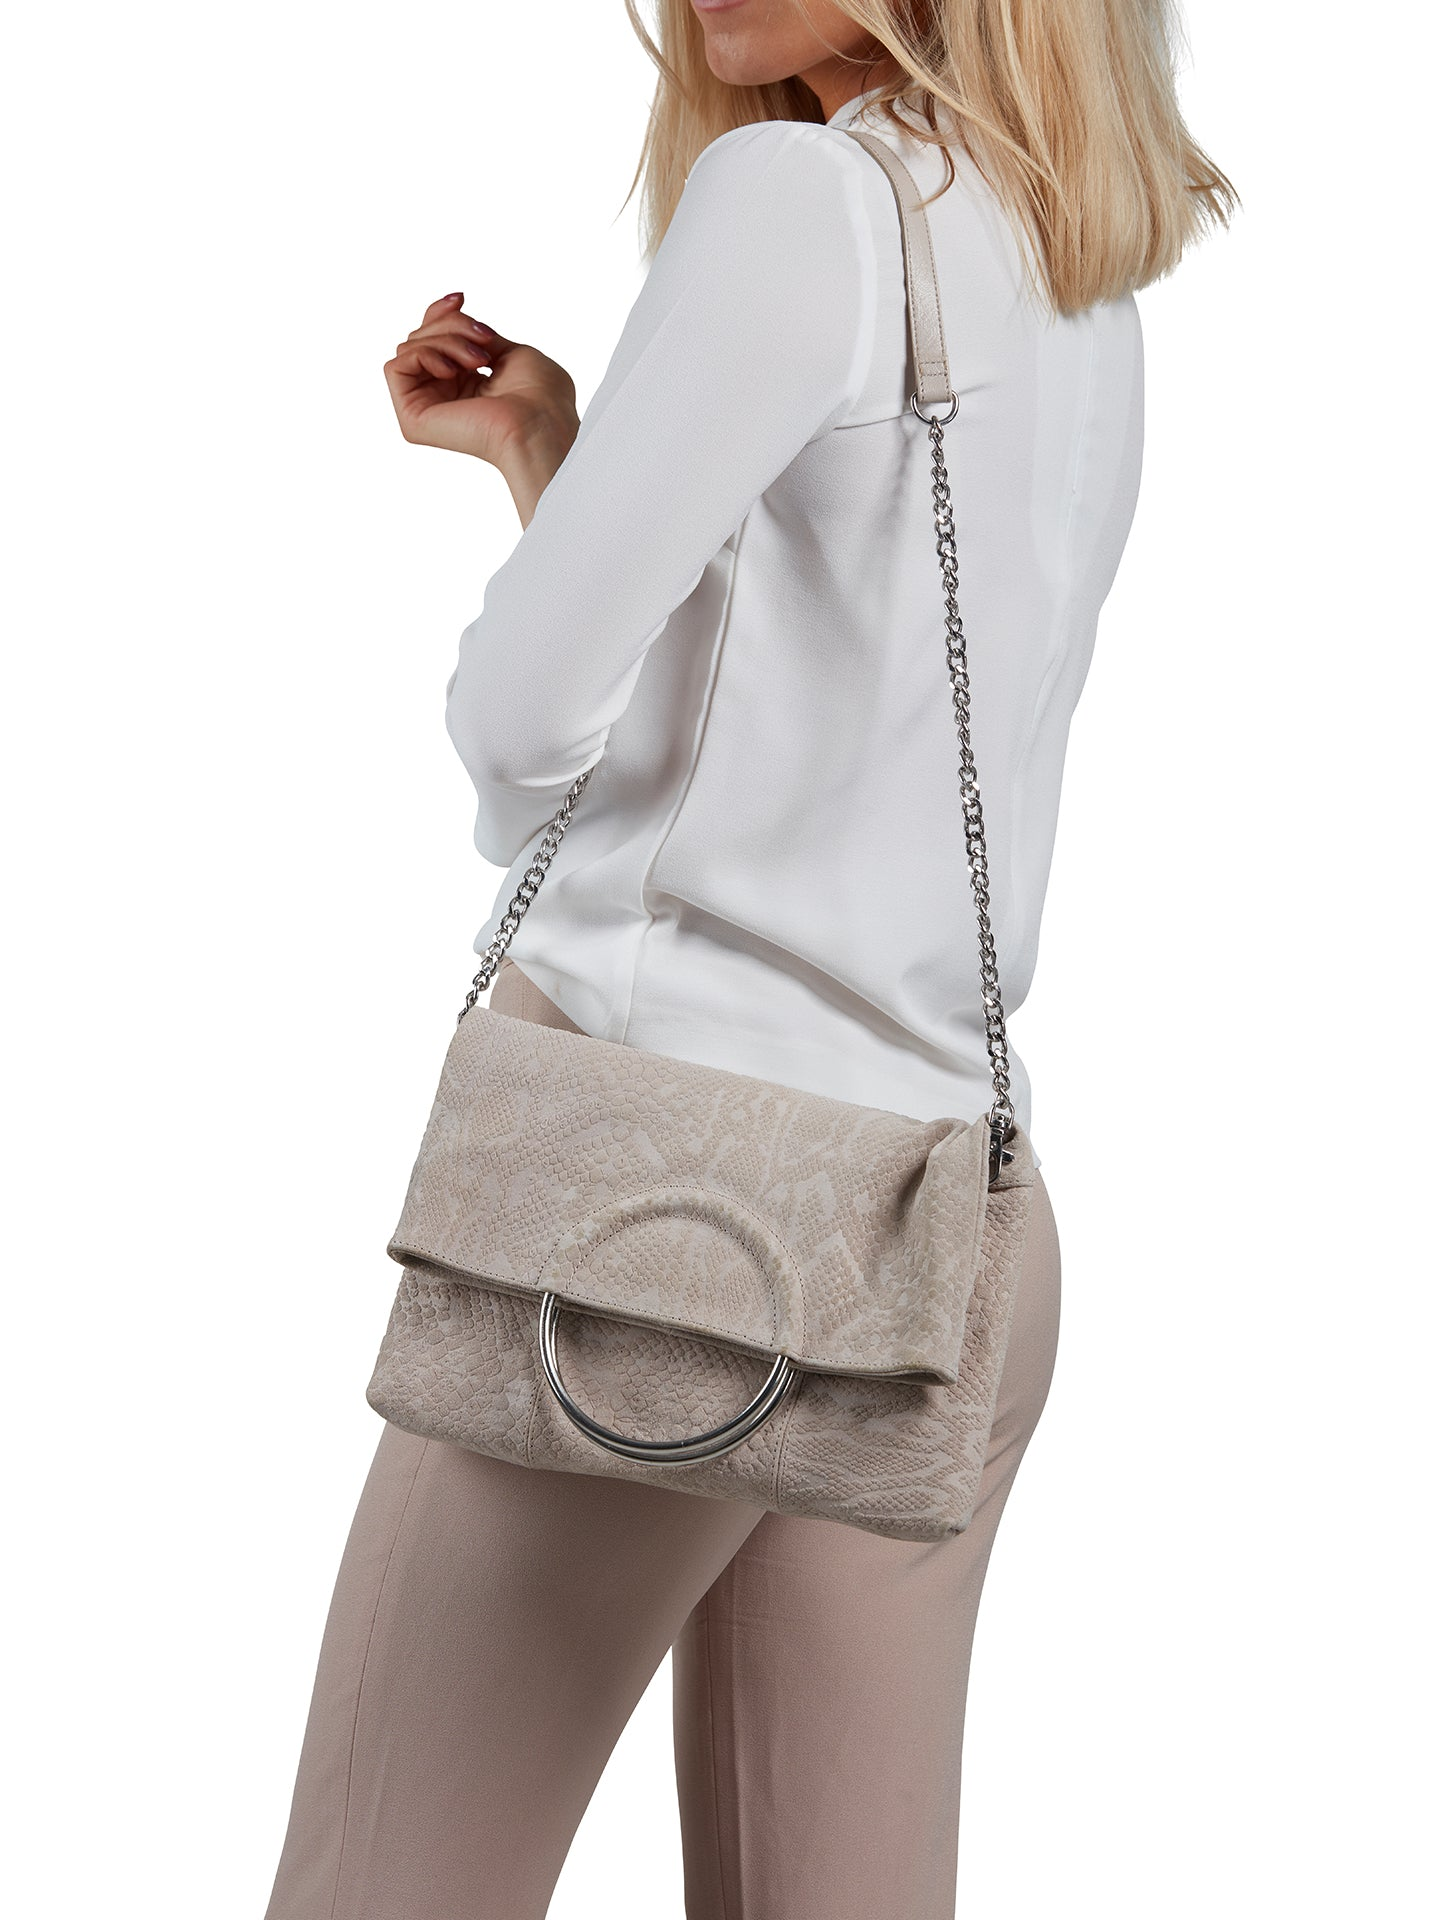 Suede Shoulder Bag - Sand